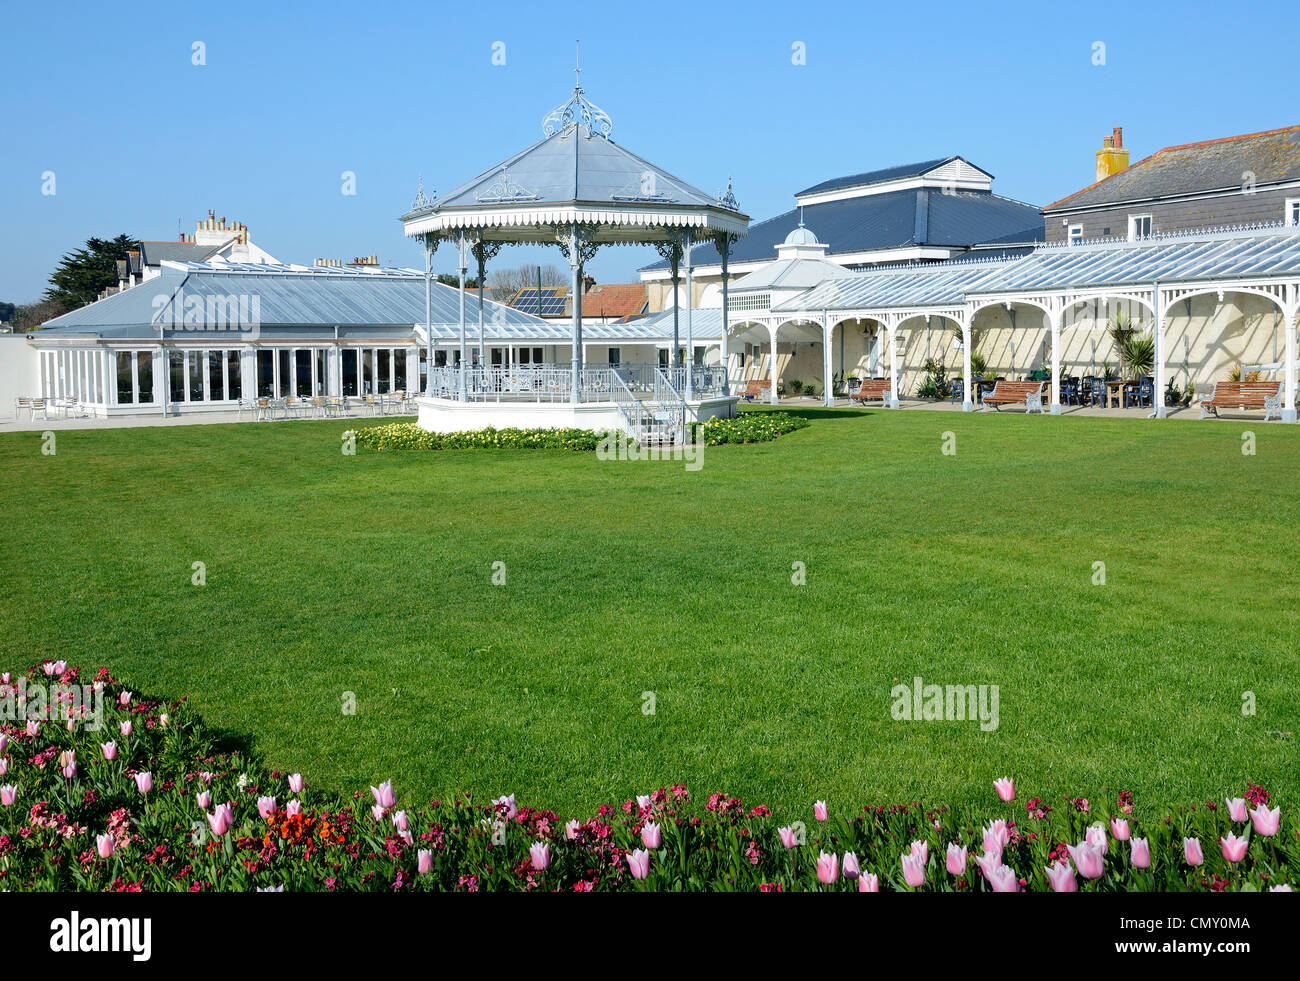 The Victorian bandstand at Princess Pavilion in Falmouth, Cornwall, UK - Stock Image